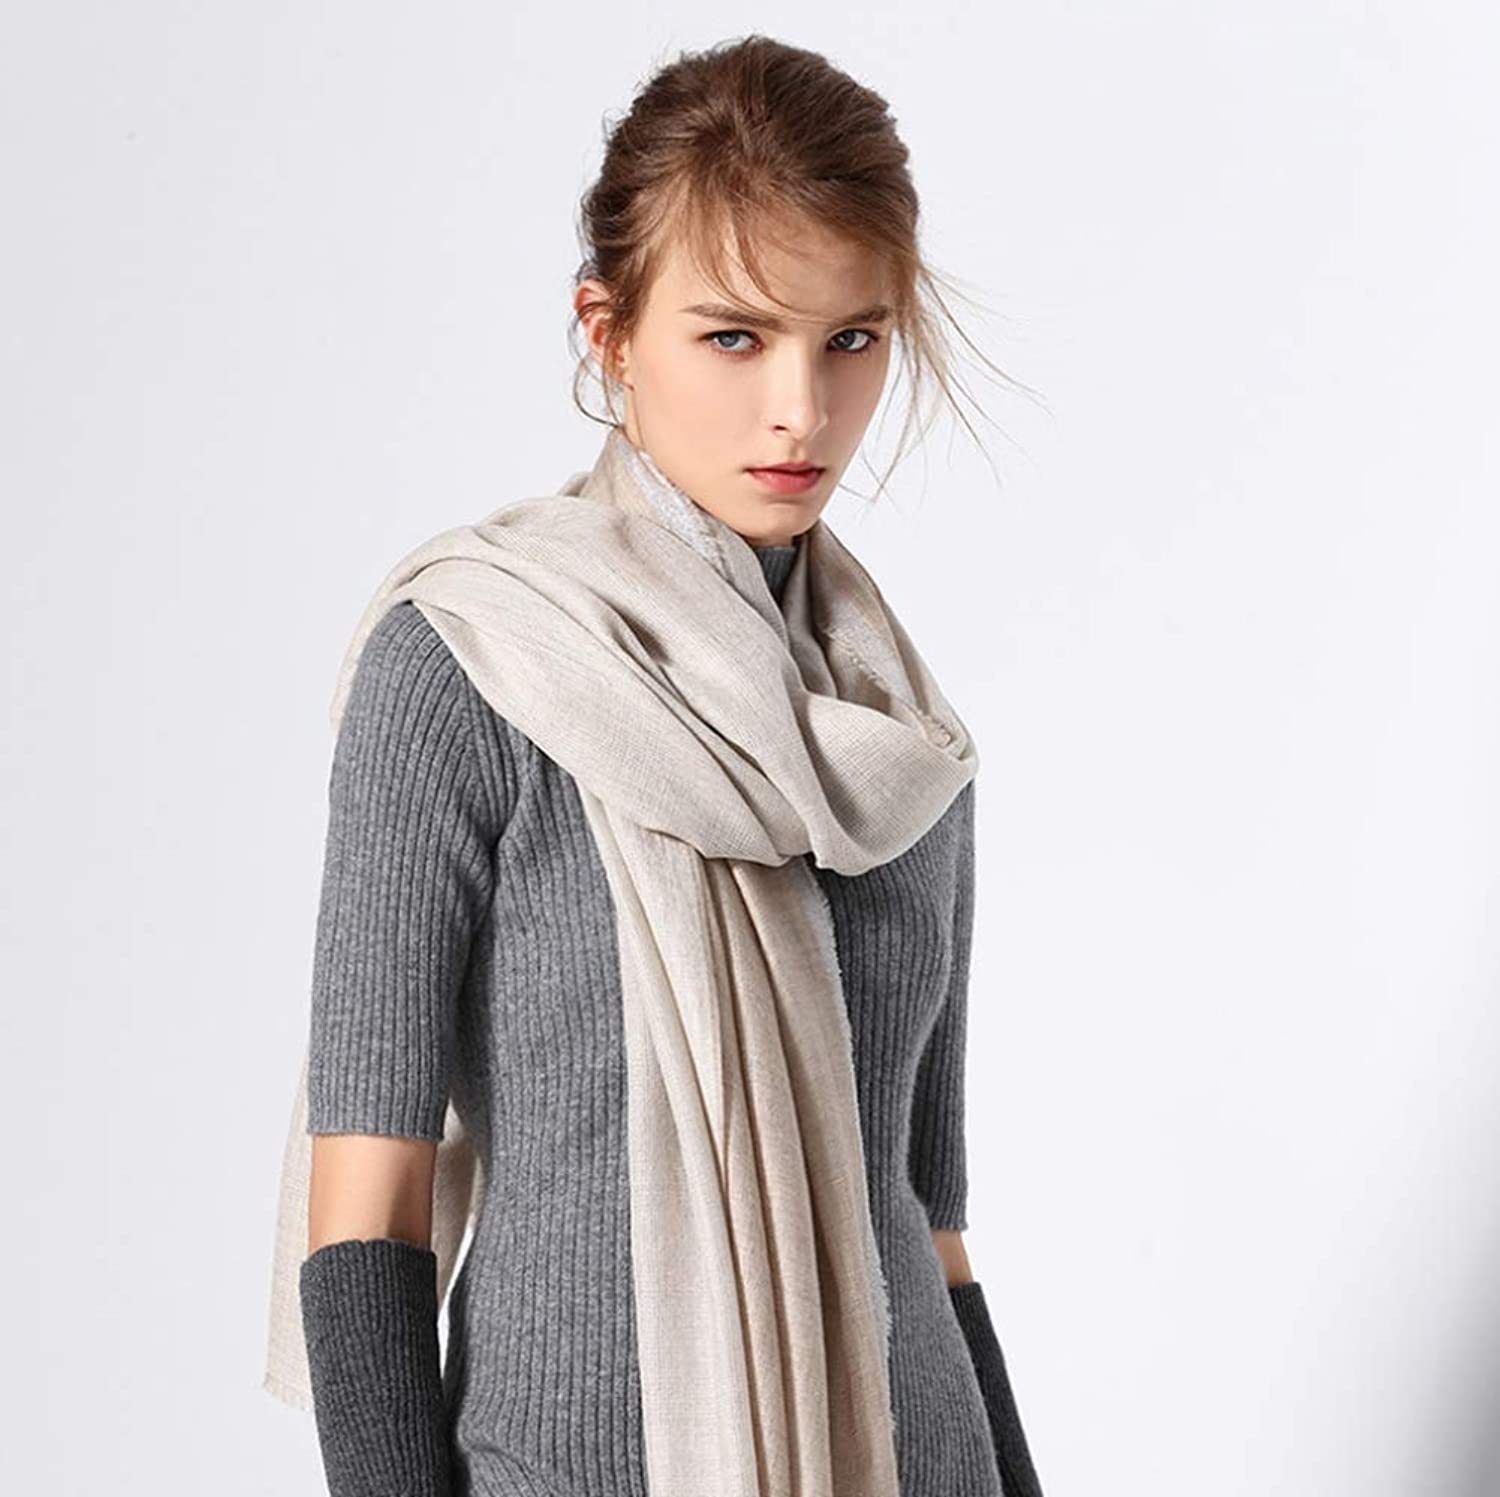 Women's Soft Classic Luxury Blanket Scarf Shawl Wrapped Women's Clothing,A